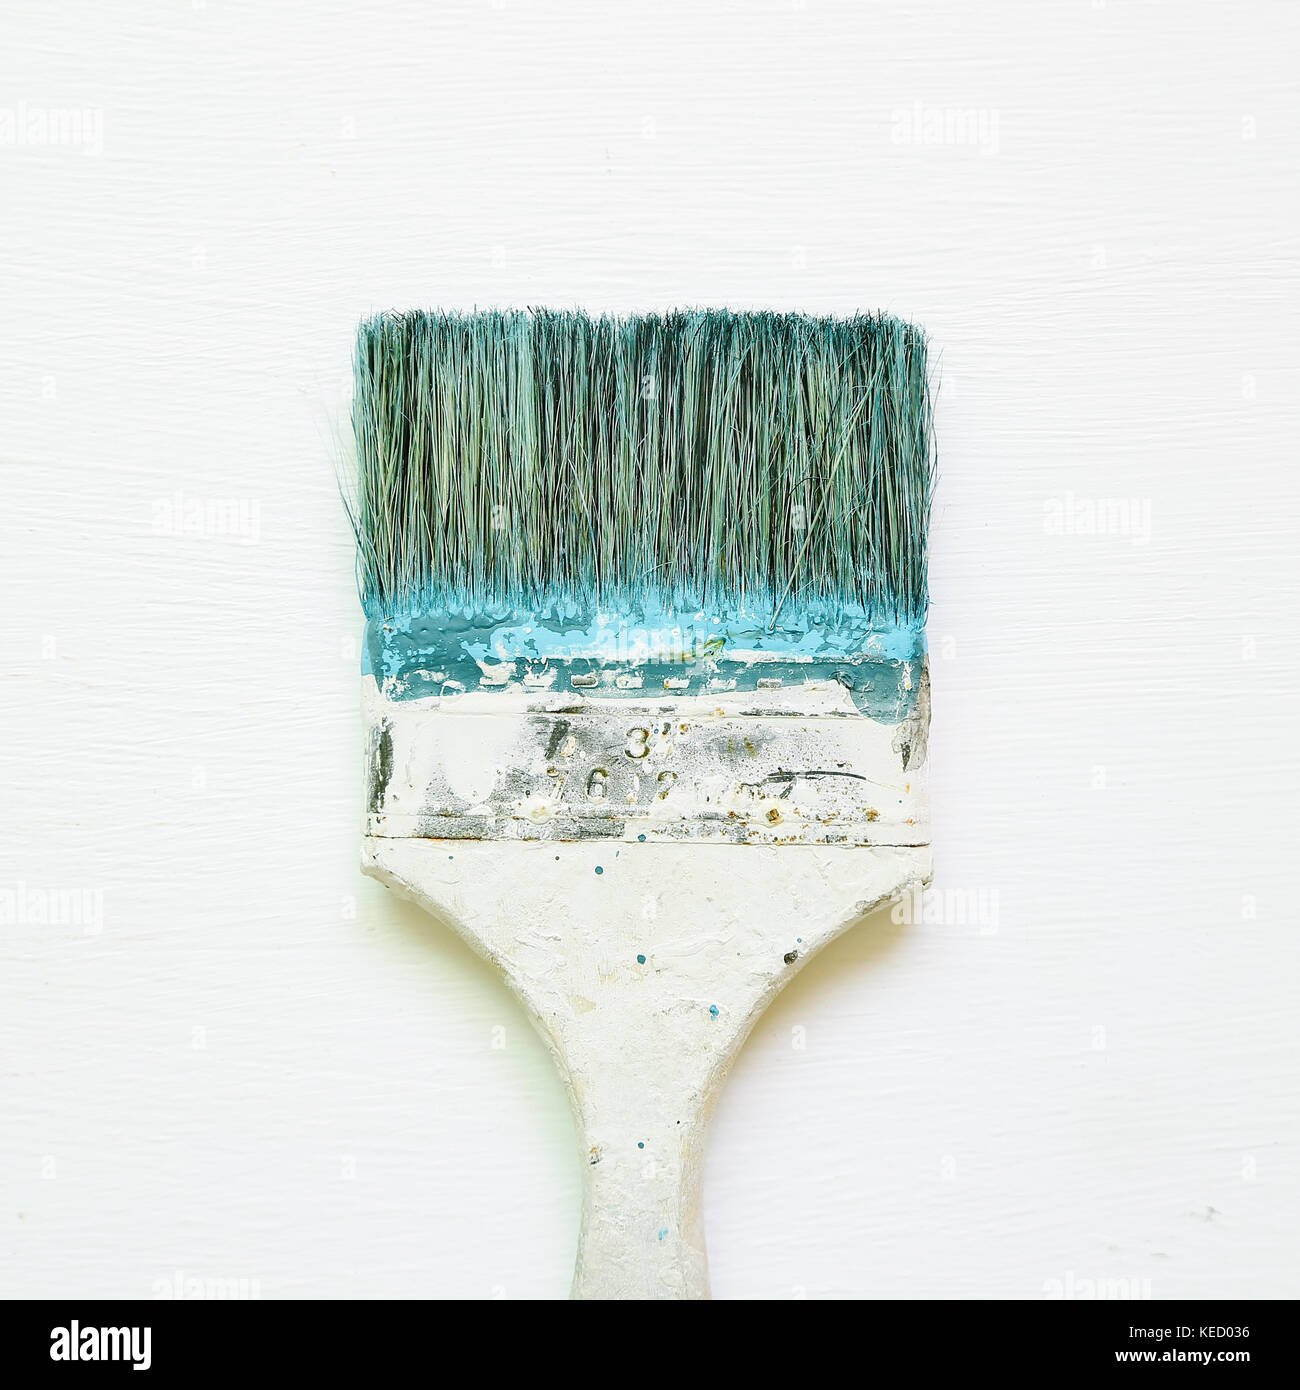 Scratch Brush Stock Photos & Scratch Brush Stock Images - Alamy